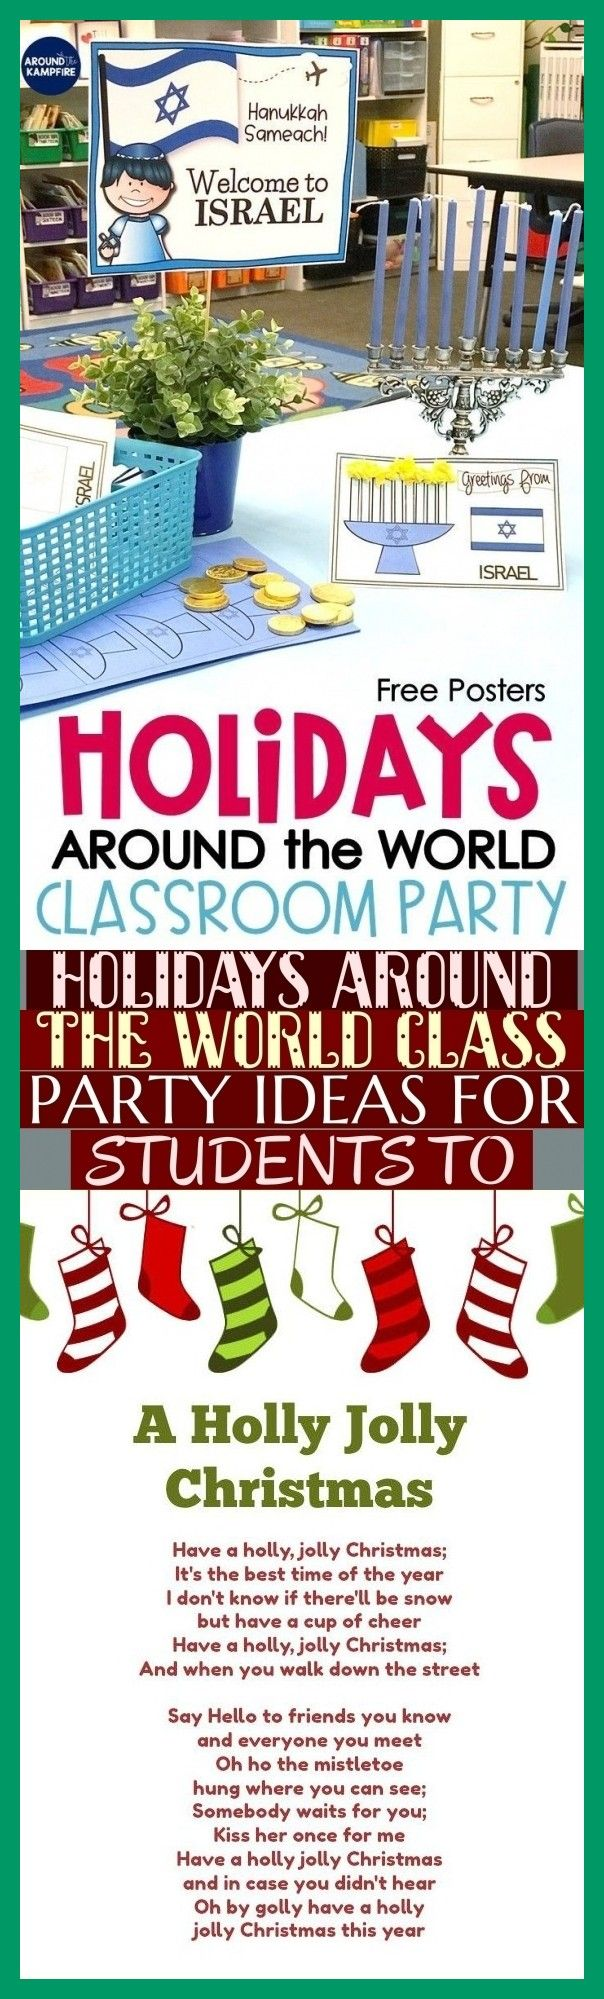 More Than 10 Holidays Around The World Class Party Ideas For Students To , Holidays around the wor